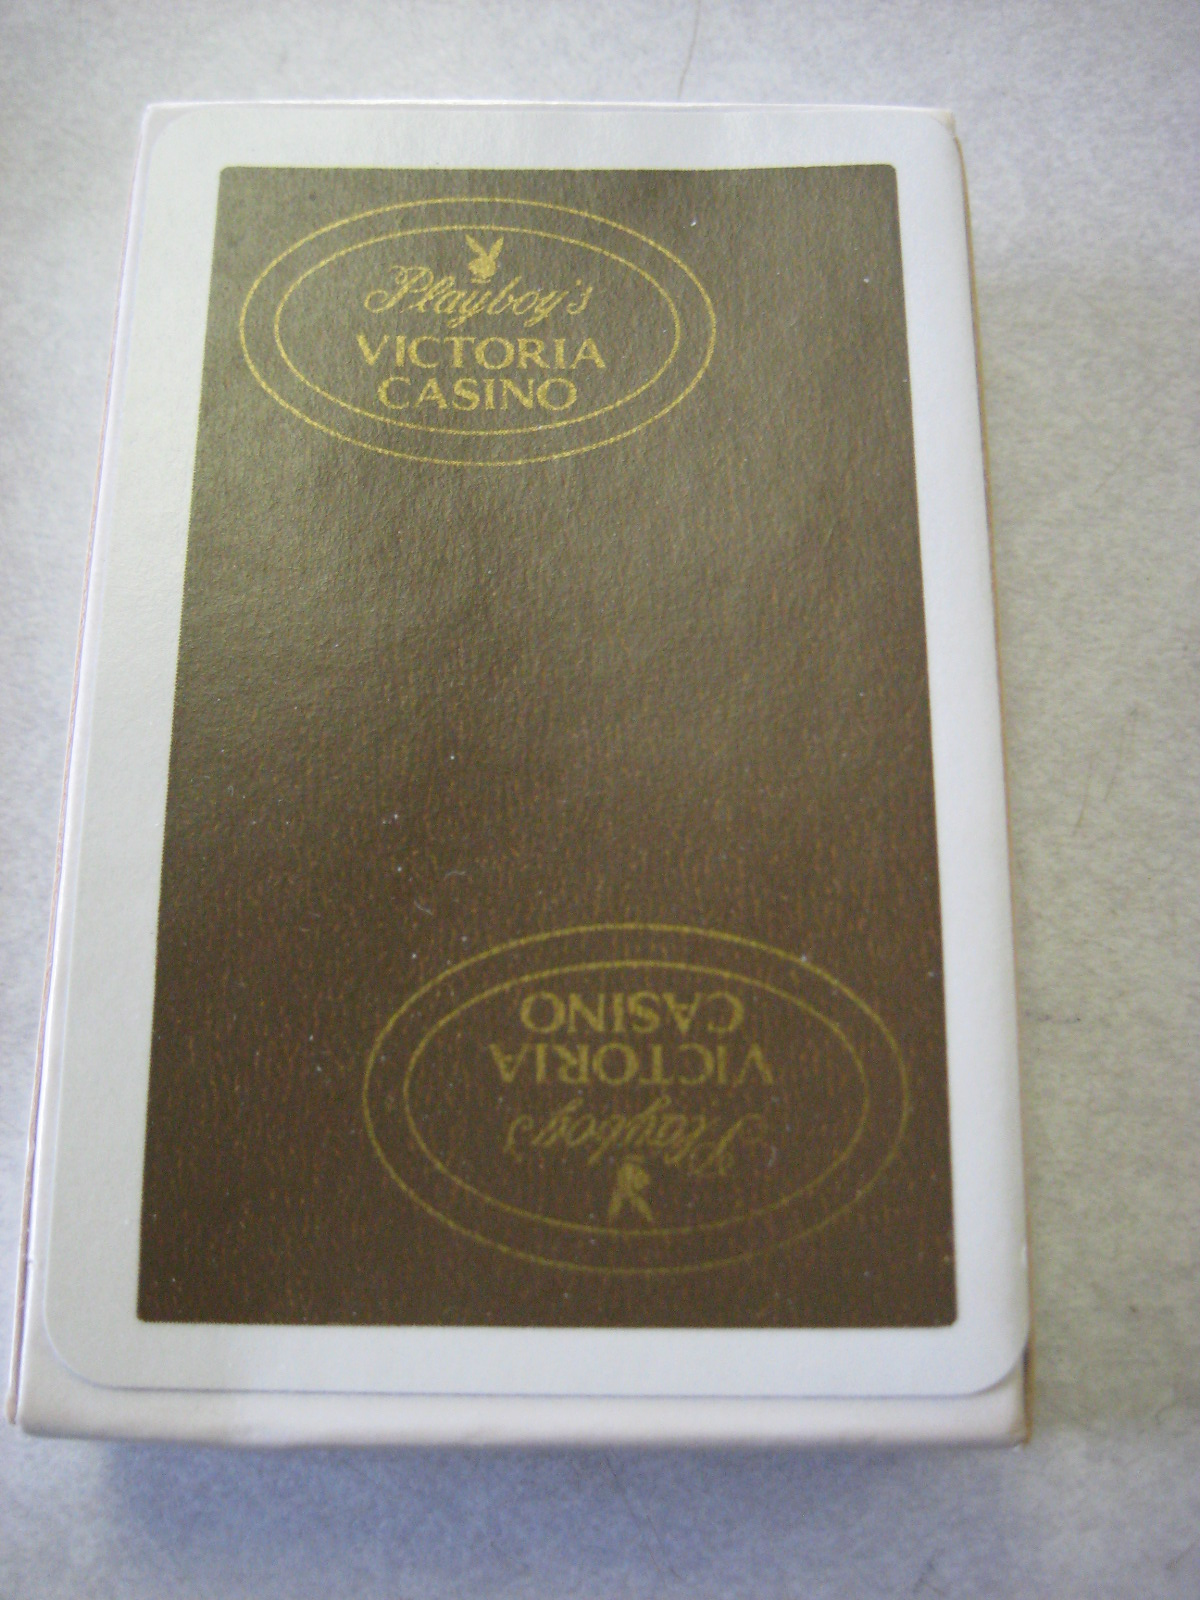 Playboy's Victoria Casino Brown Deck of Playing Cards Box